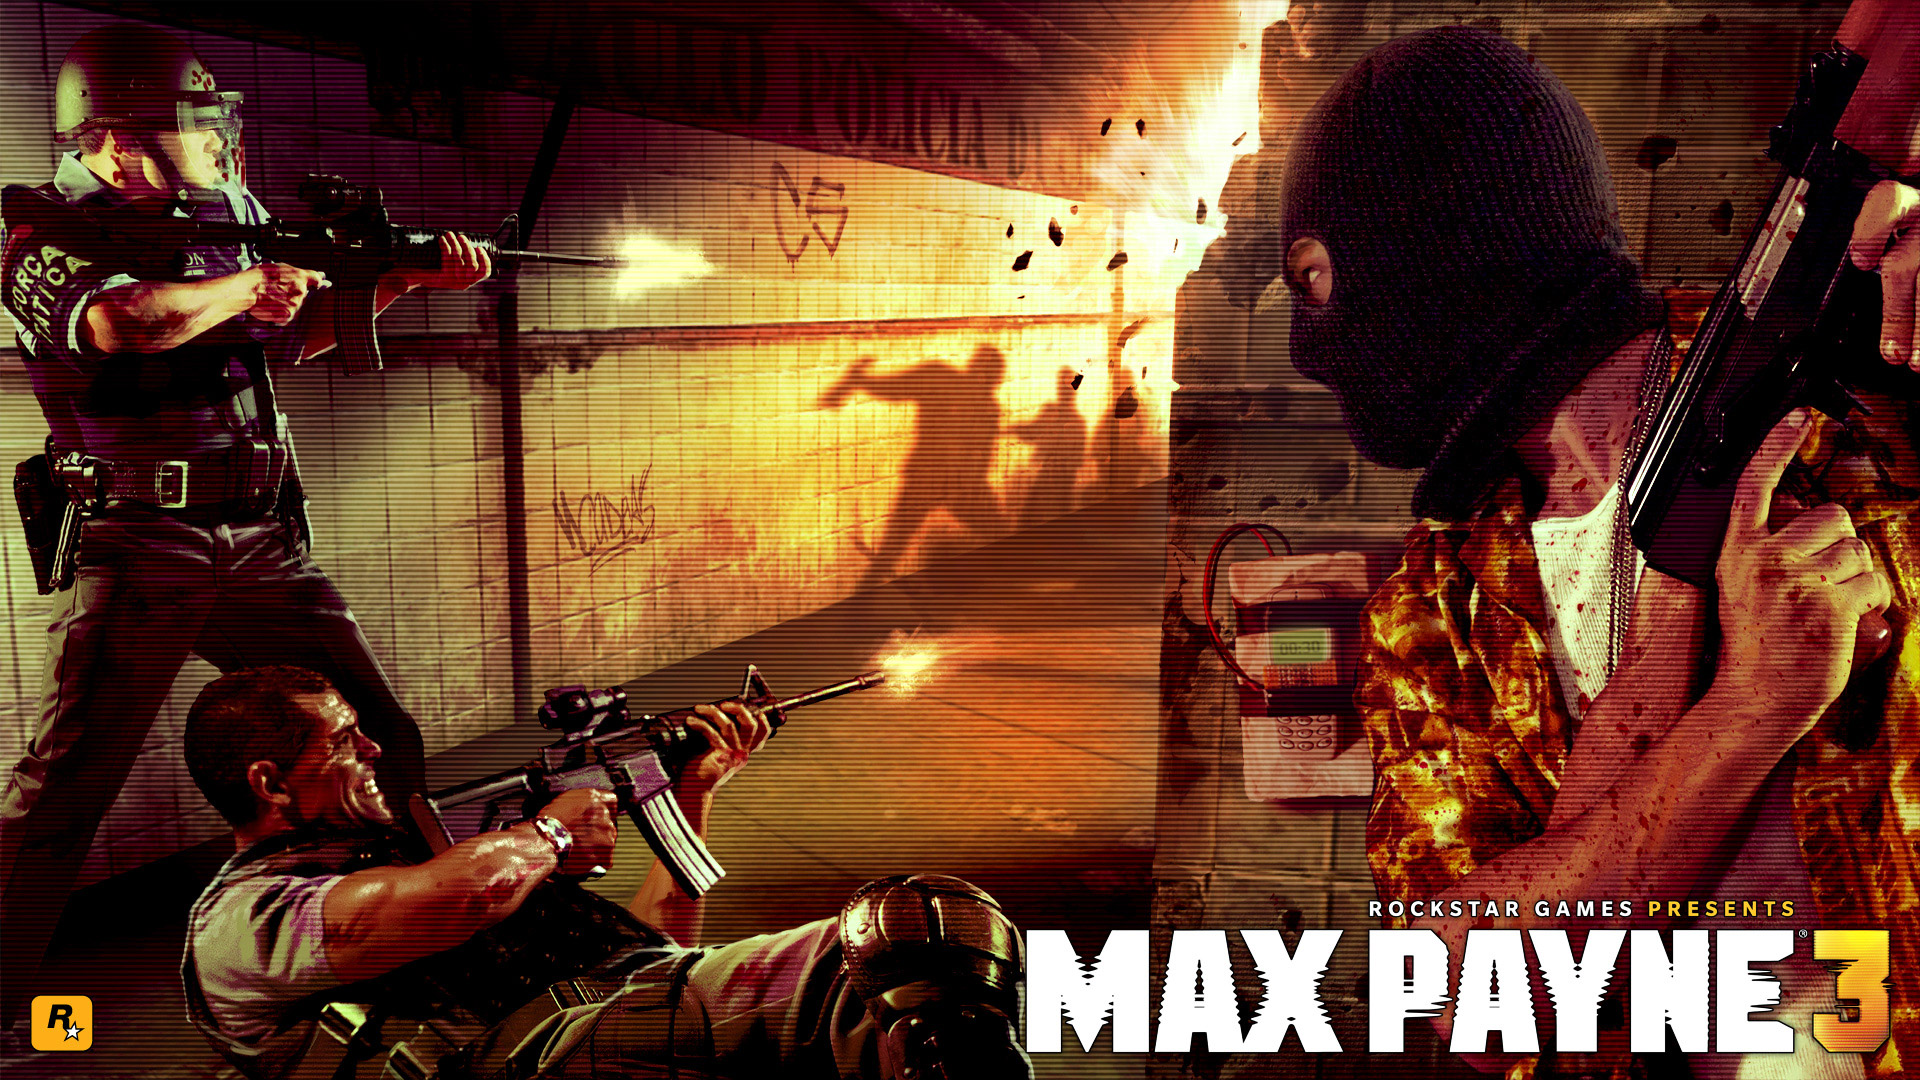 Free Max Payne 3 Wallpaper in 1920x1080